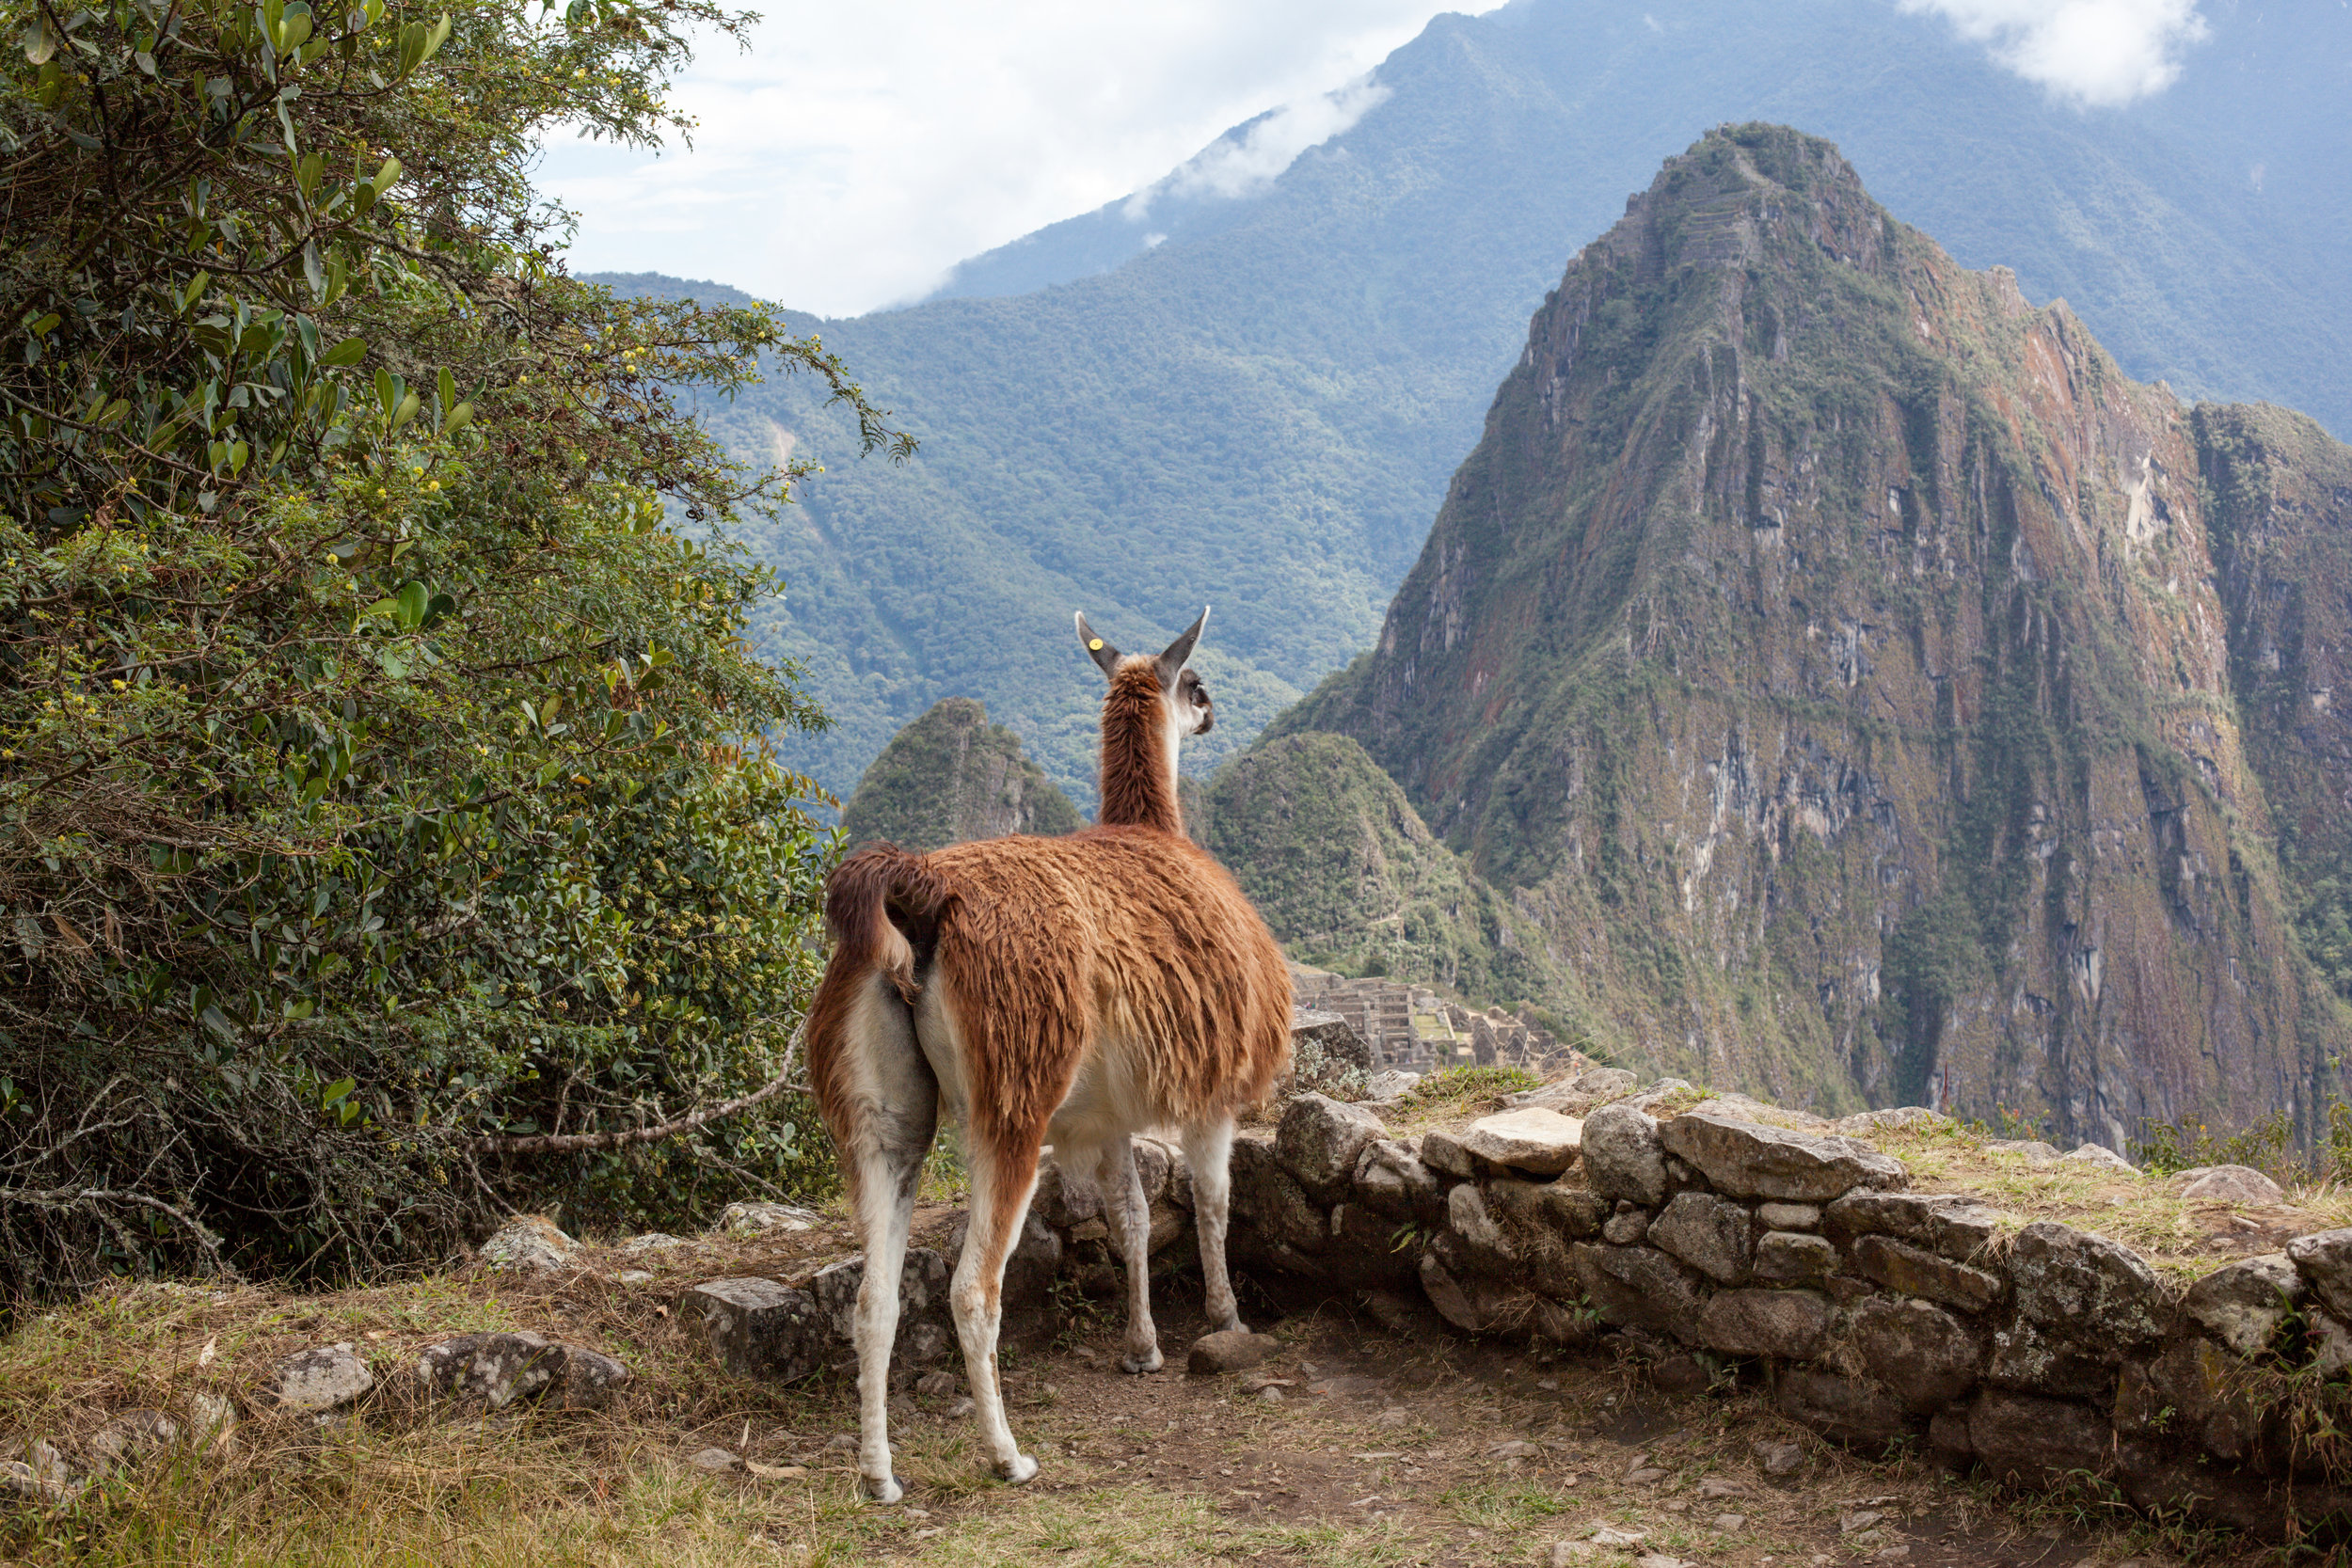 A llama enjoys the view of Machu Picchu.